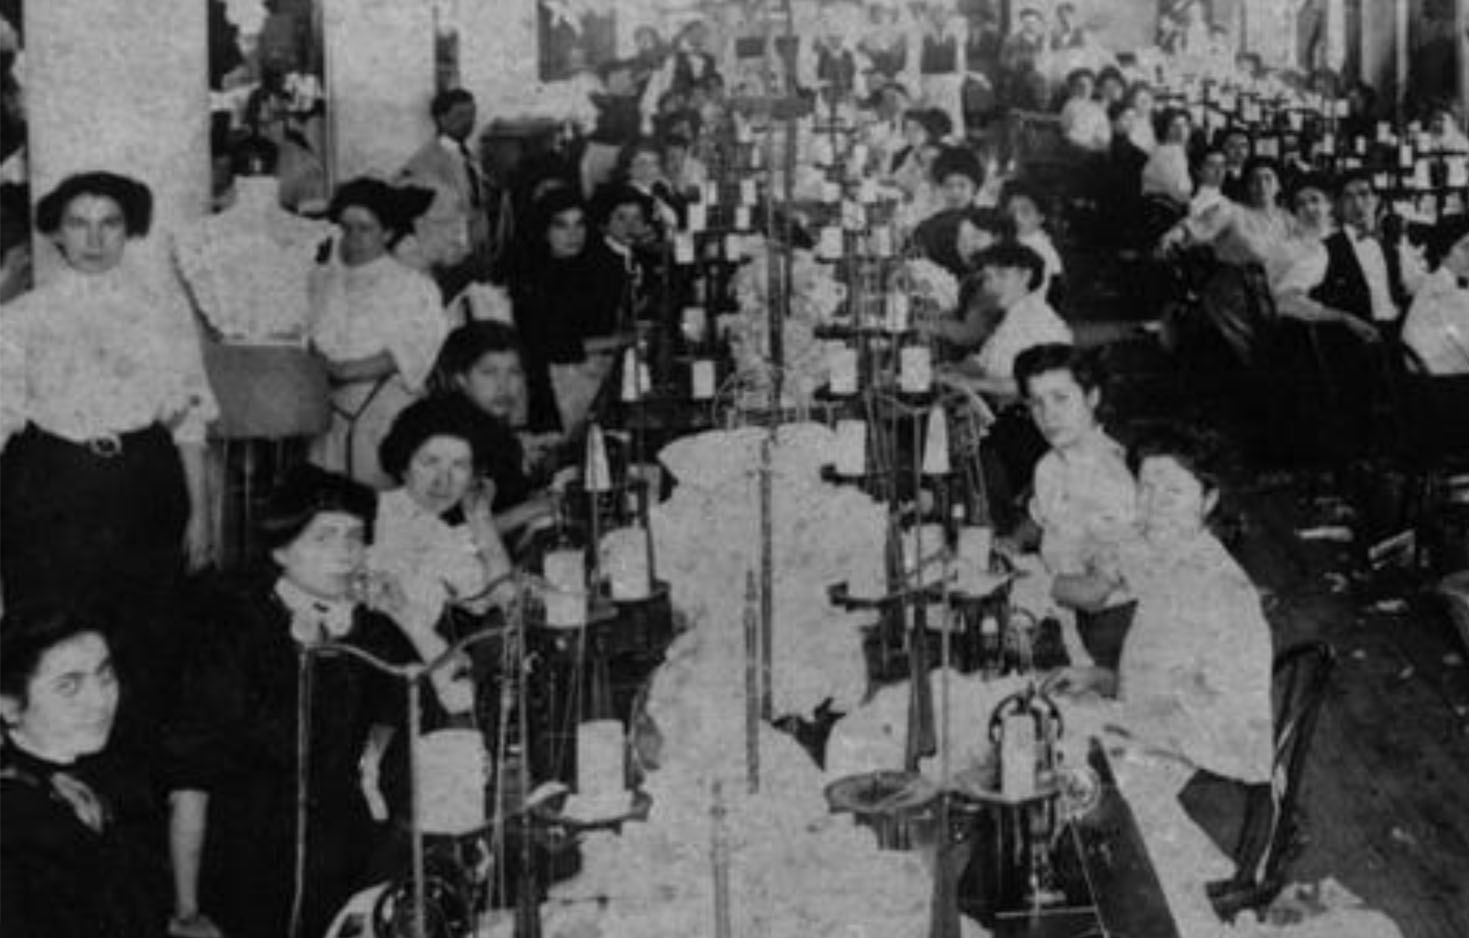 2 very long tables of female garment workers seated at various sewing machine stations at a factory